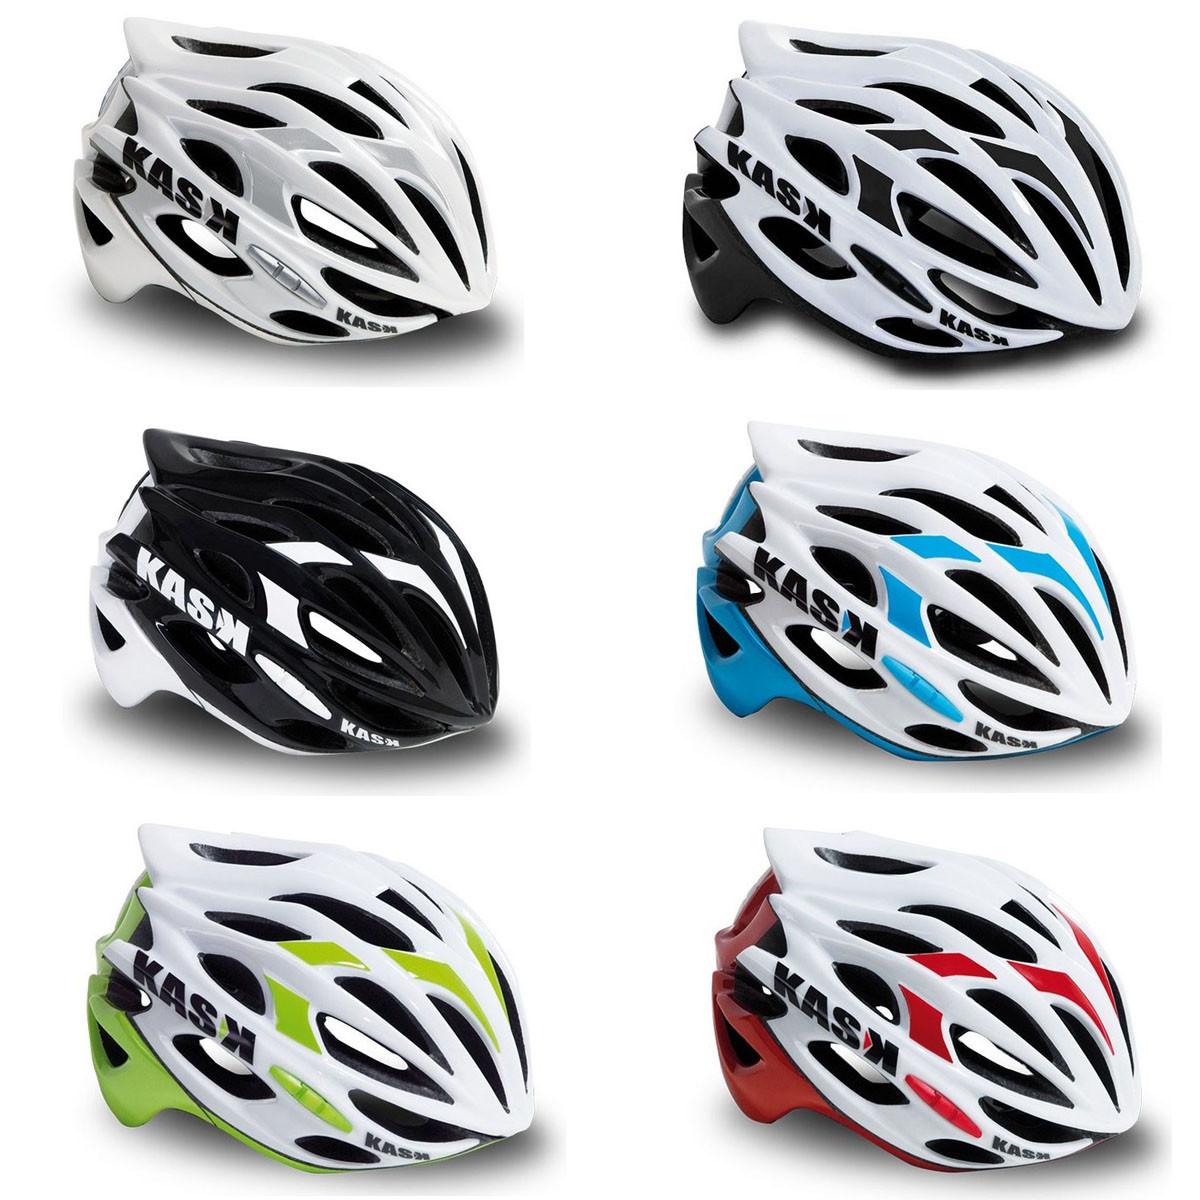 casque de v lo kask mojito couleur au choix dynamic v lo vente kask en ligne. Black Bedroom Furniture Sets. Home Design Ideas